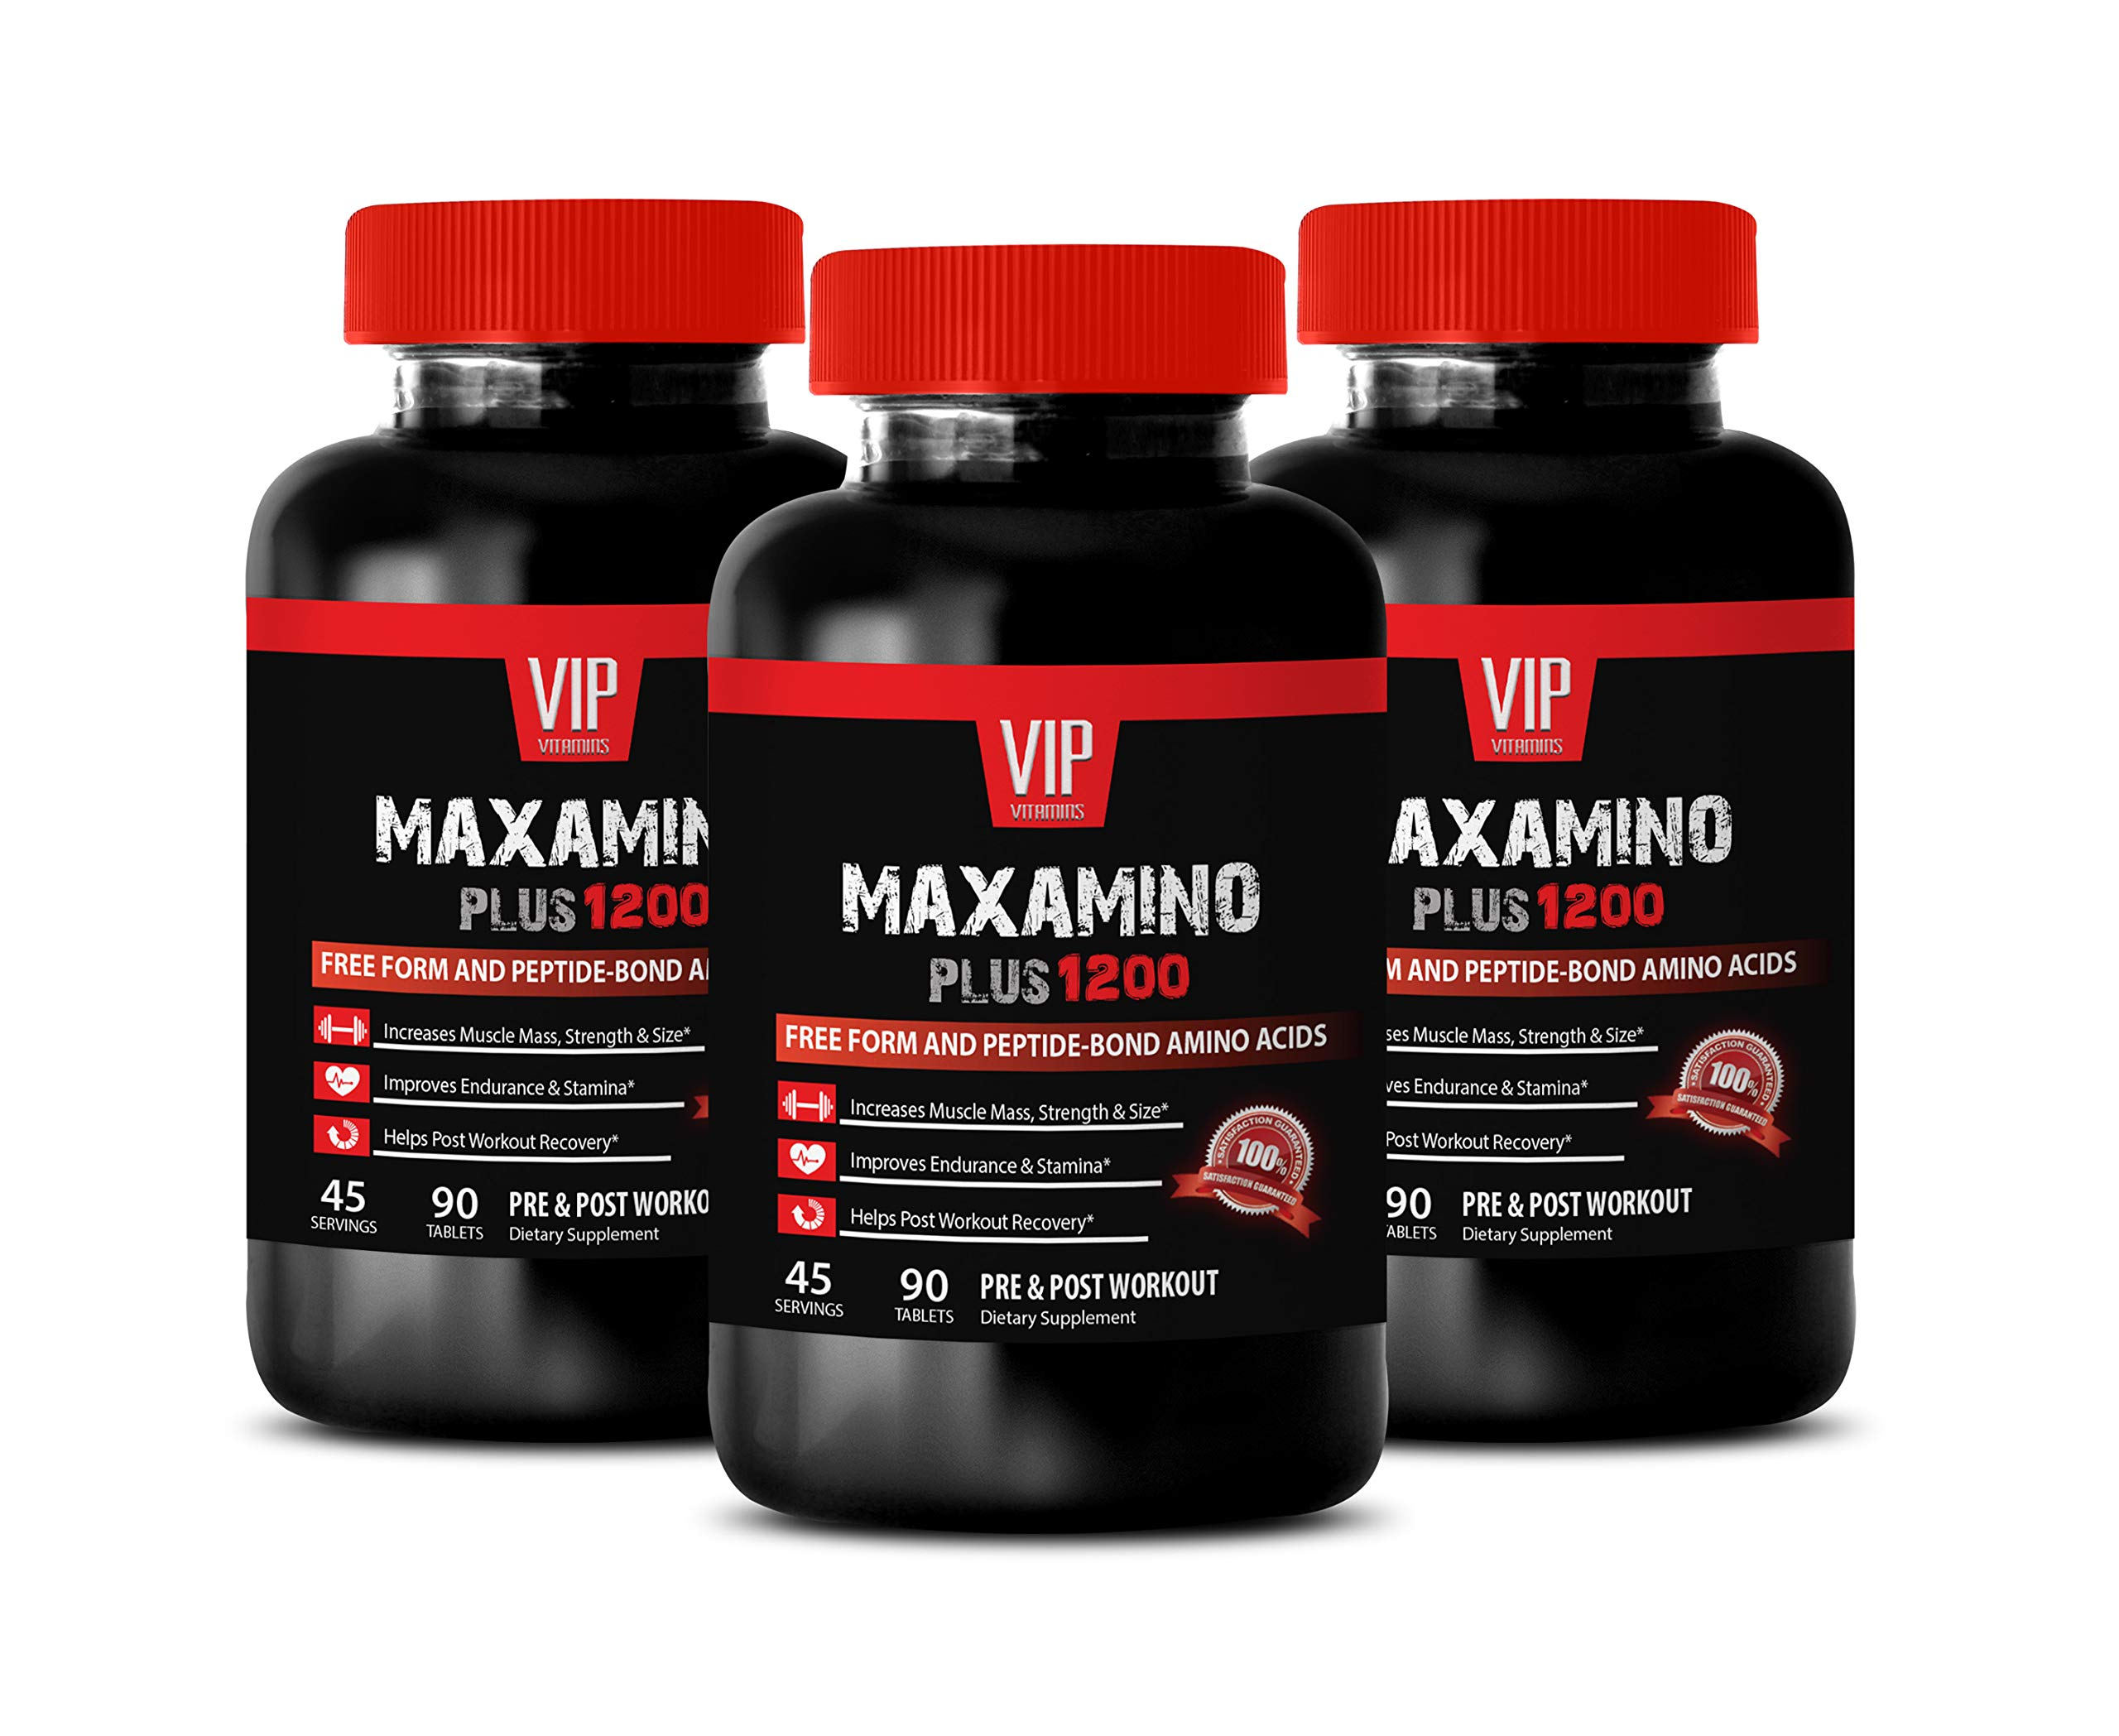 Muscle Recovery Vitamins - MAXAMINO Plus 1200 for Men - Free Form and PEPTIDE Bond Amino ACIDS - PRE and Post Workout - 9 Amino acids Supplements - 3 Bottles (270 Tablets)